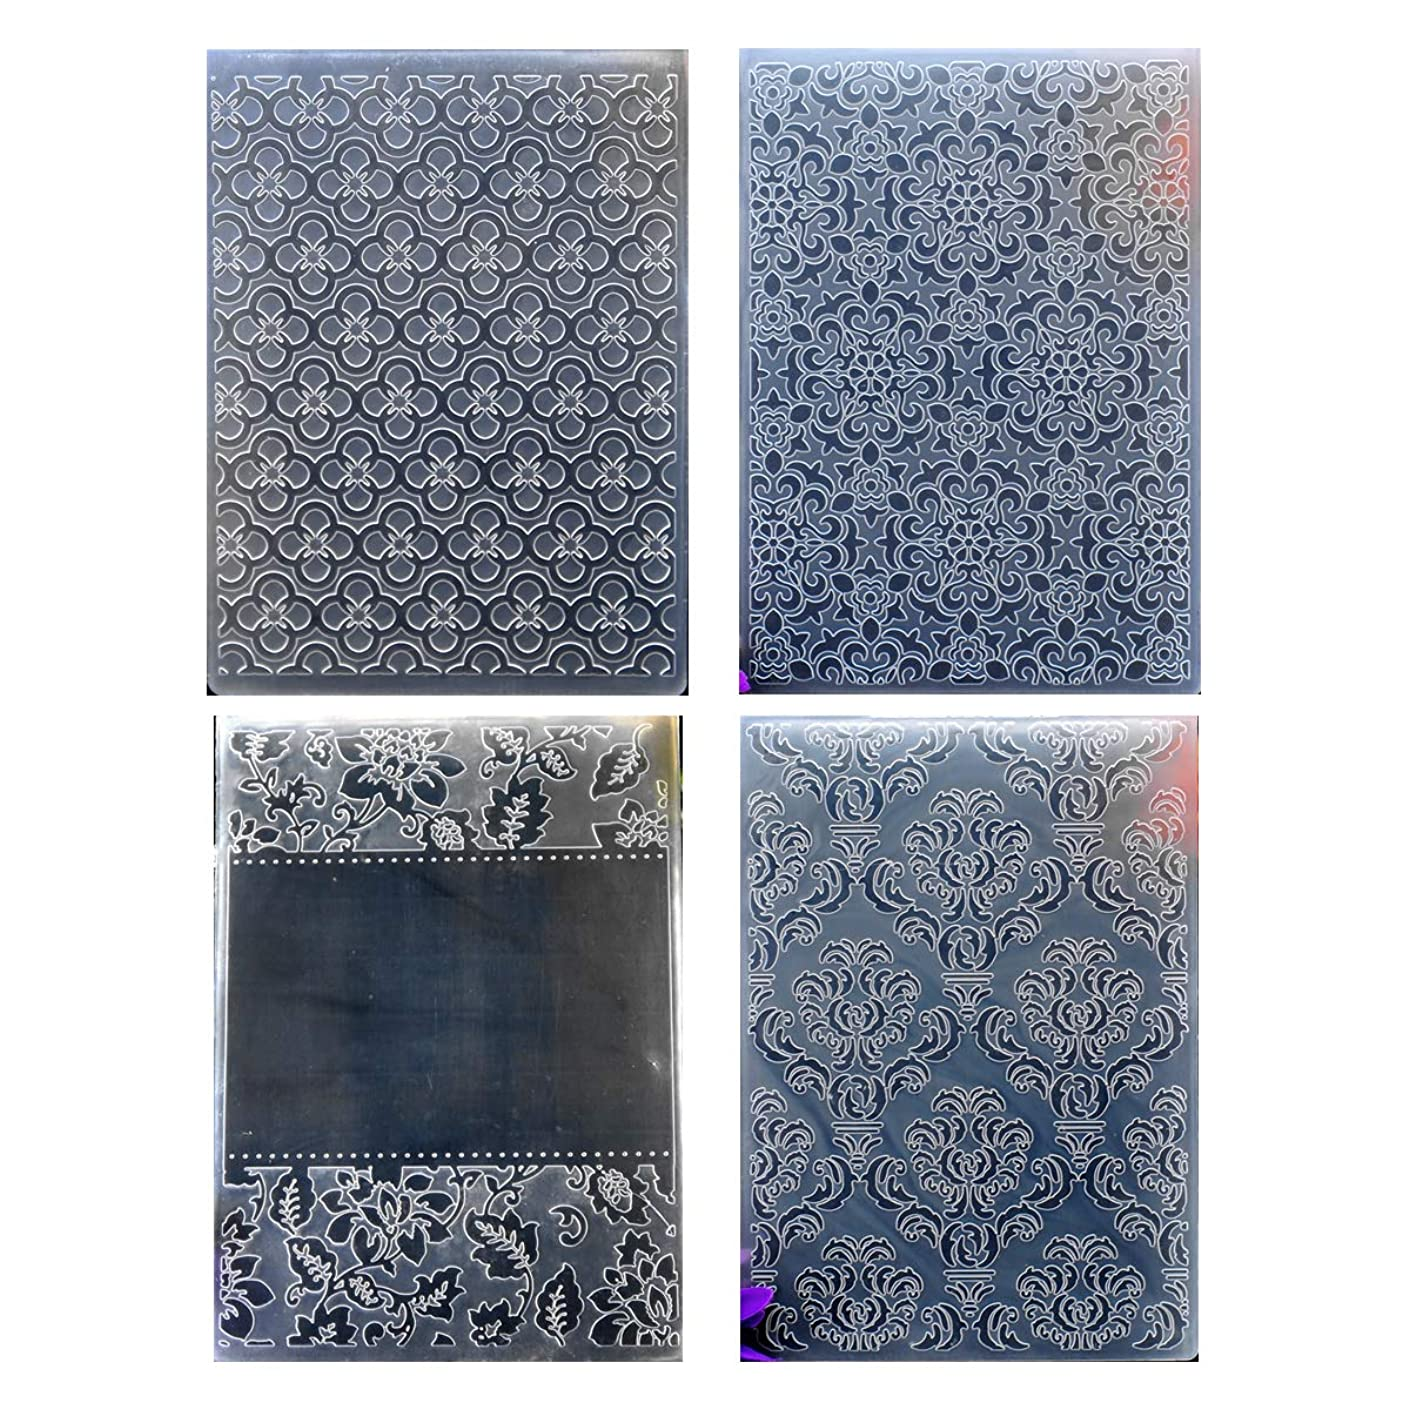 Kwan Crafts 4 pcs Different Style Flowers Plastic Embossing Folders for Card Making Scrapbooking and Other Paper Crafts,12.5x17.7cm